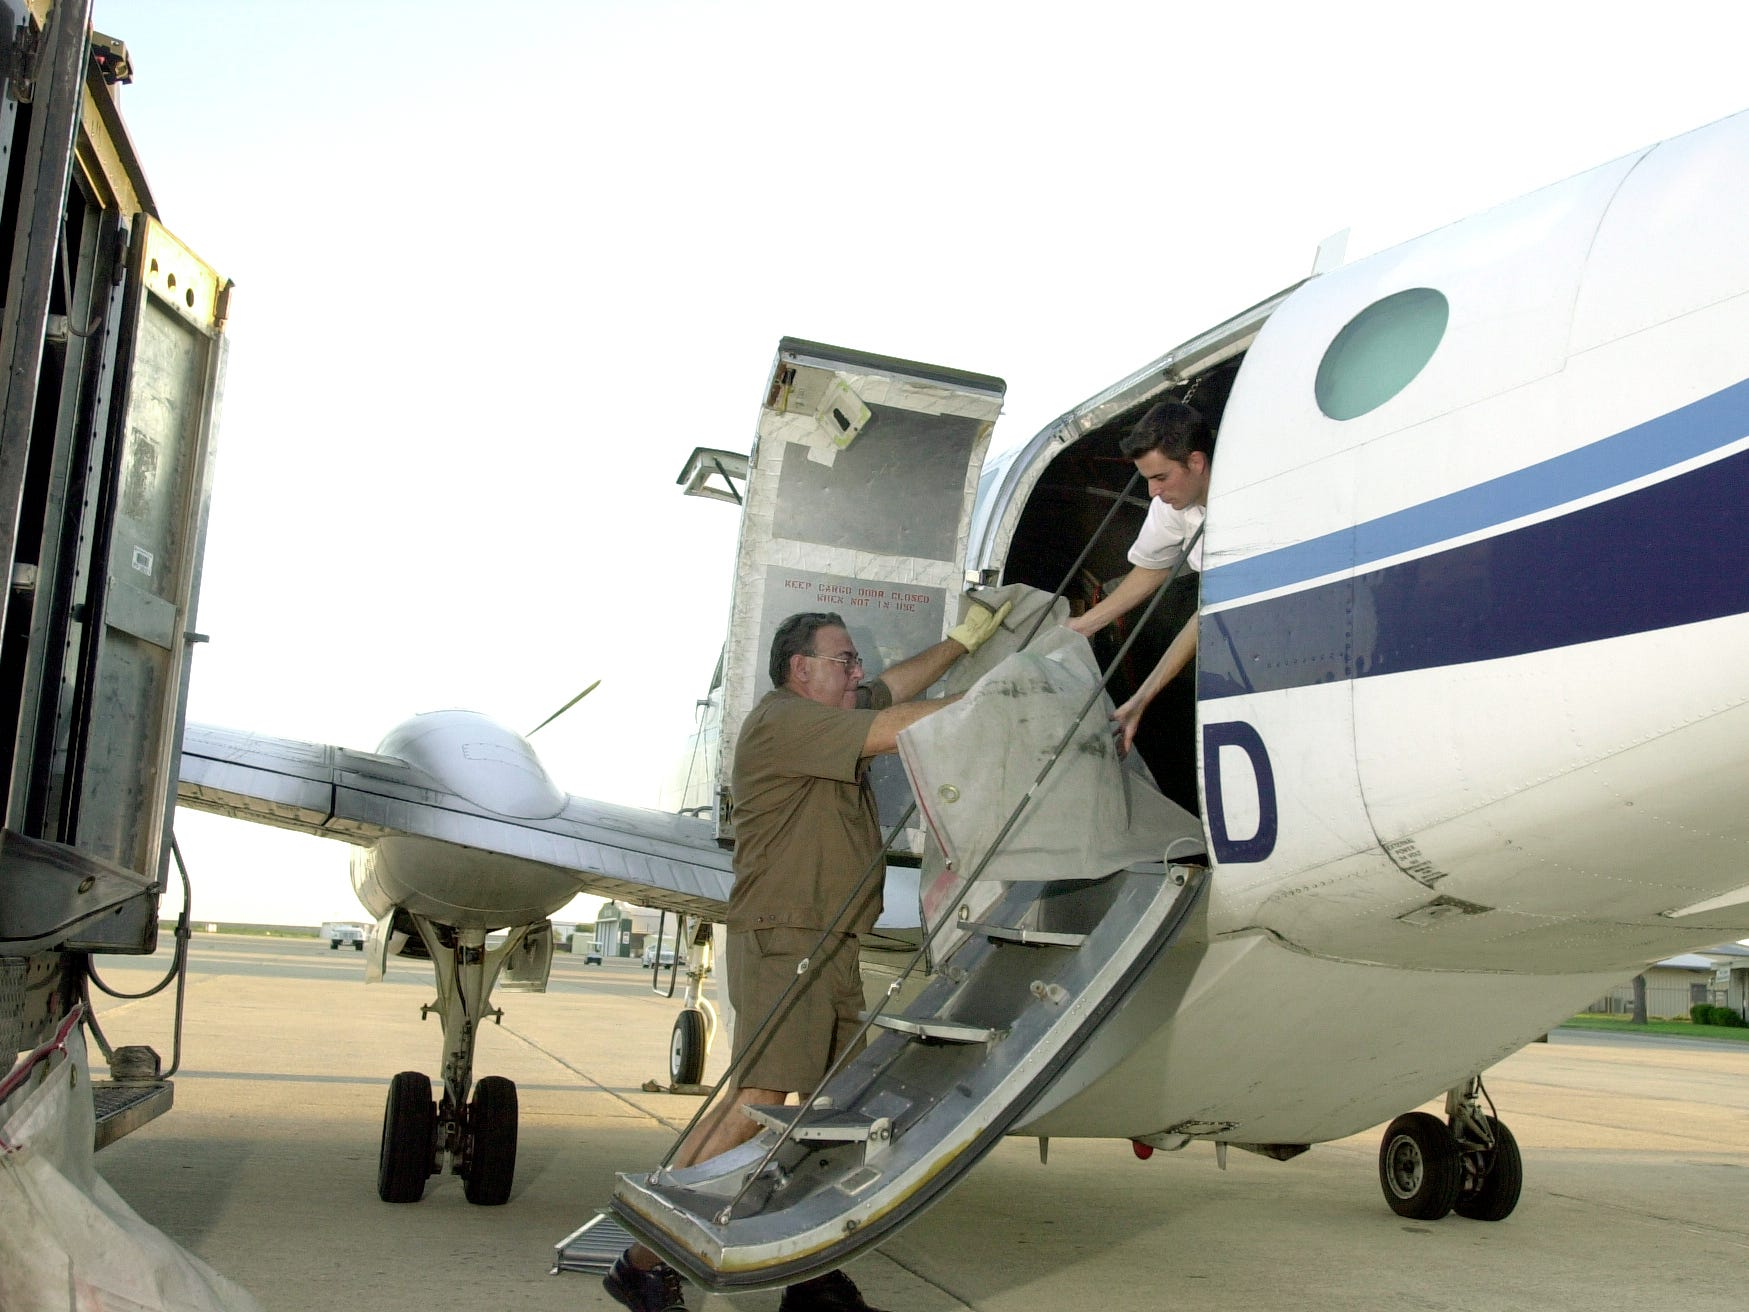 UPS employee Norman Trent (left) and Ameriflight Pilot Cory Pettit load the cargo bay of a plane Sept. 13, 2001, at Mathis Field. It was the companies' first shipment to leave San Angelo by air since the Sept. 11 grounding of all planes.